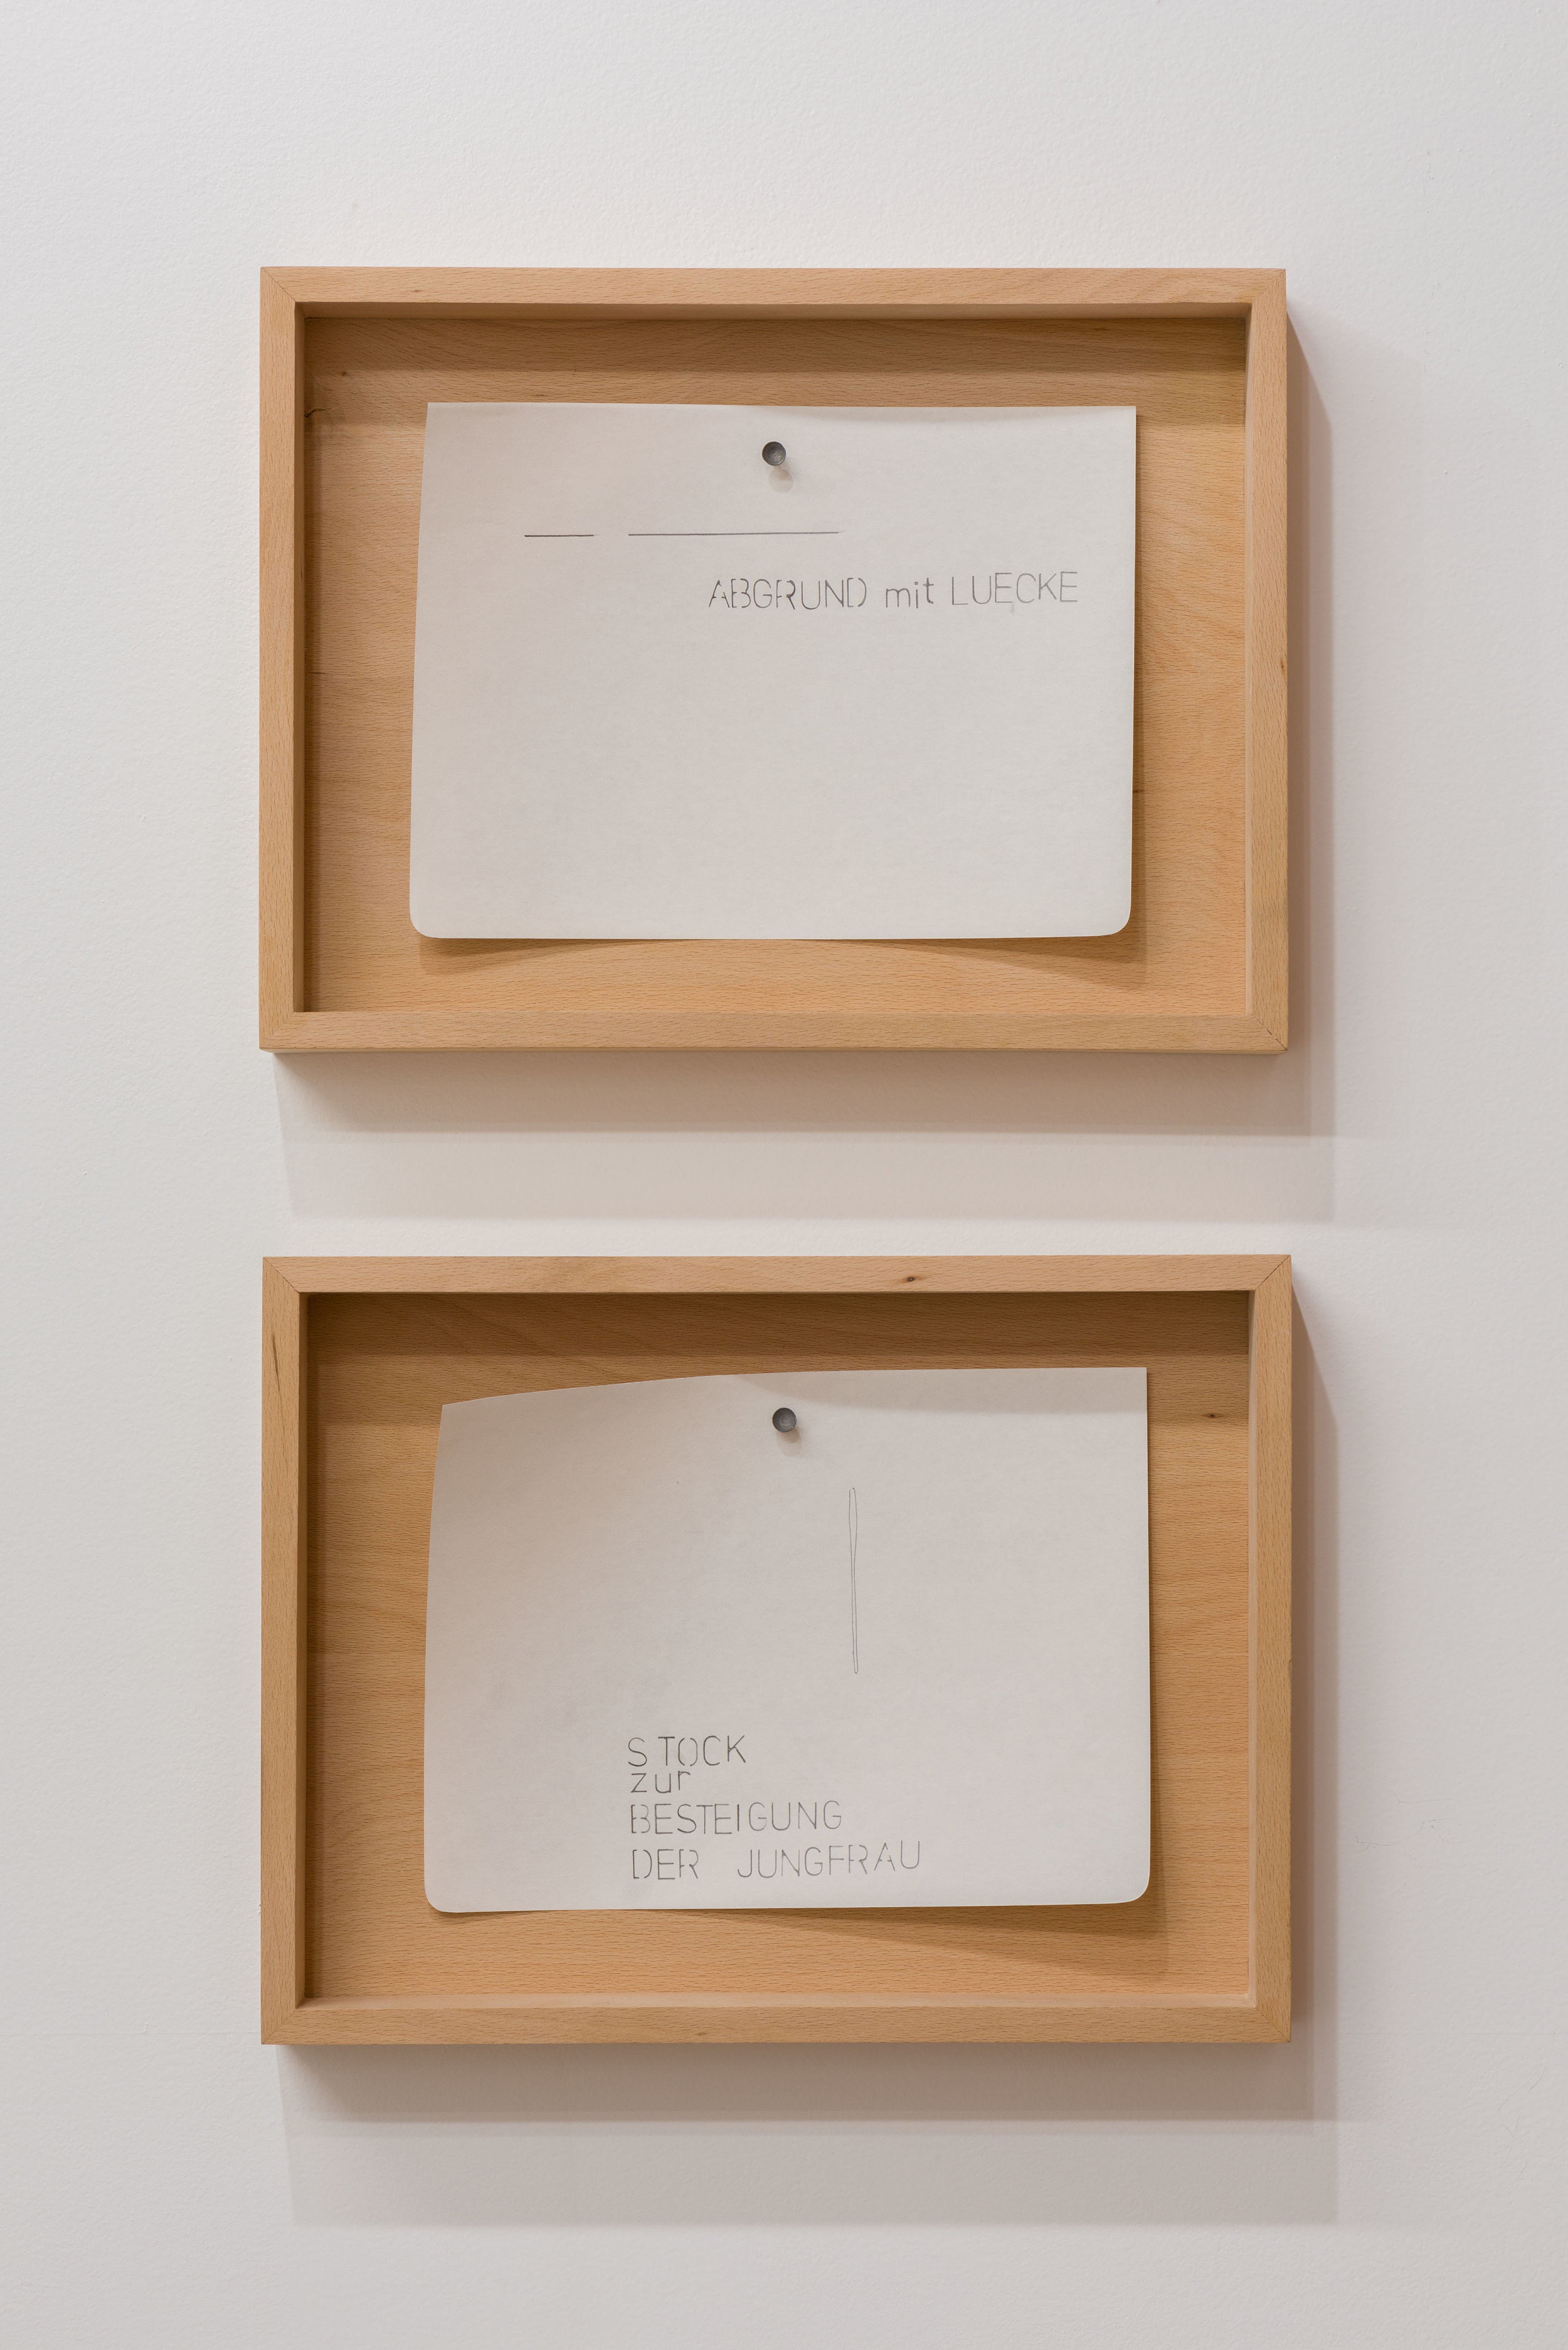 Margarethe Drexel, 'ABGRUND mit LUECKE (ABYSS with GAP)'and 'STOCK zur BESTEIGUNG DER JUNGFRAU (STICK for MOUNTING THE VIRGIN)' 2015, pencil on paper, nail. Each: 9.75 x 7 inches, framed with beech untreated, 17.75 x 10.5 x 2 inches. Photo: Ruben Diaz.